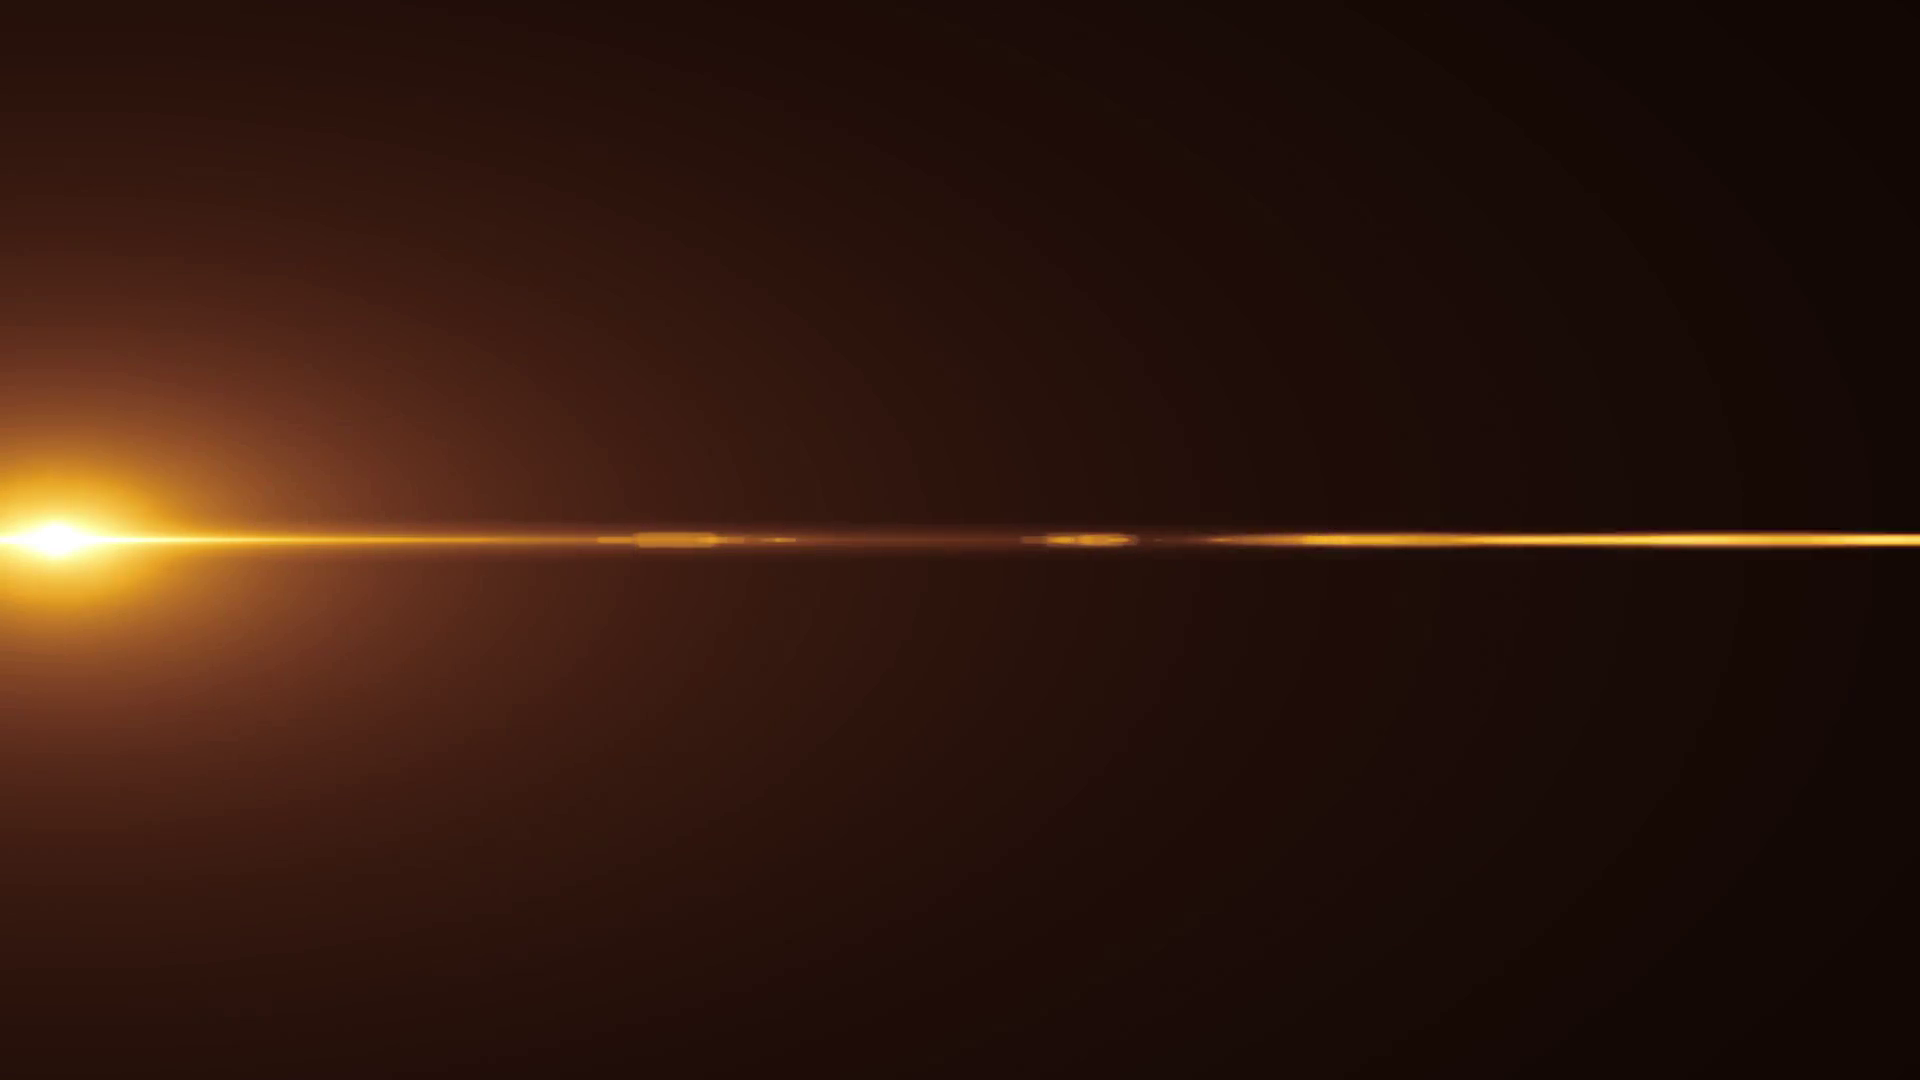 Light flare png gold. Horizontal golden sun moving